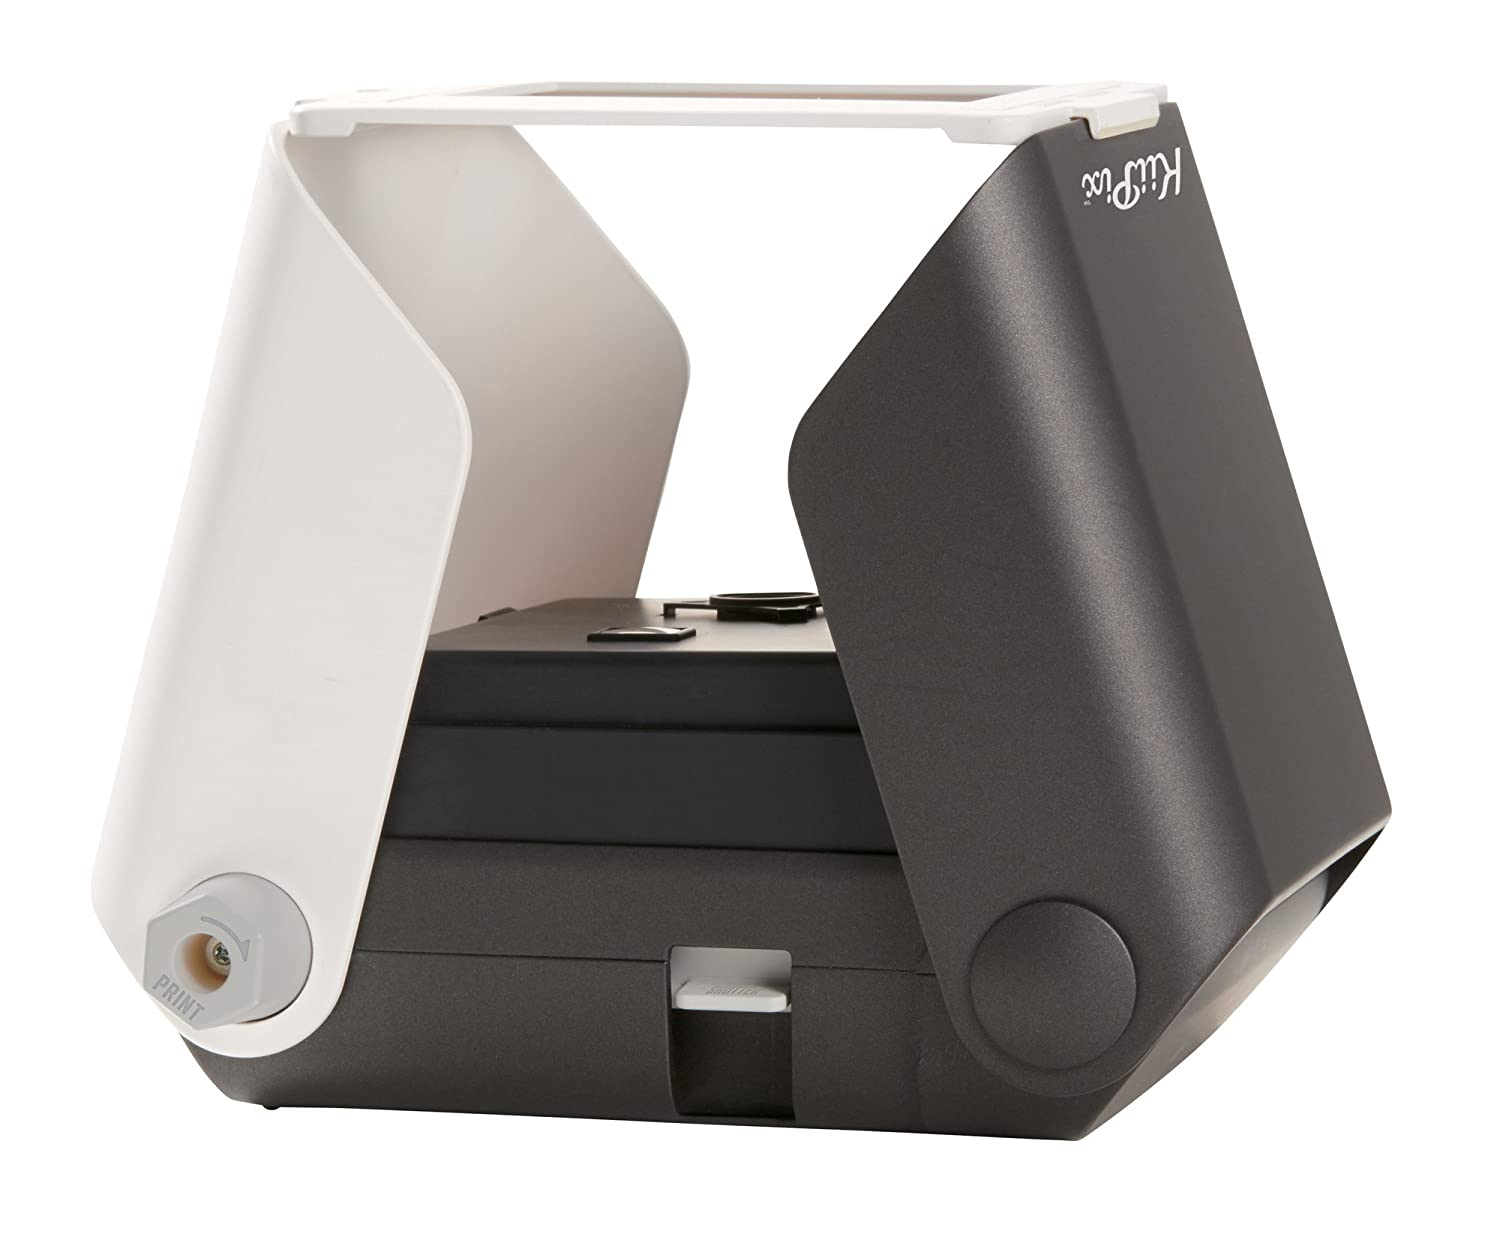 KiiPix Portable Photo Printer, Black